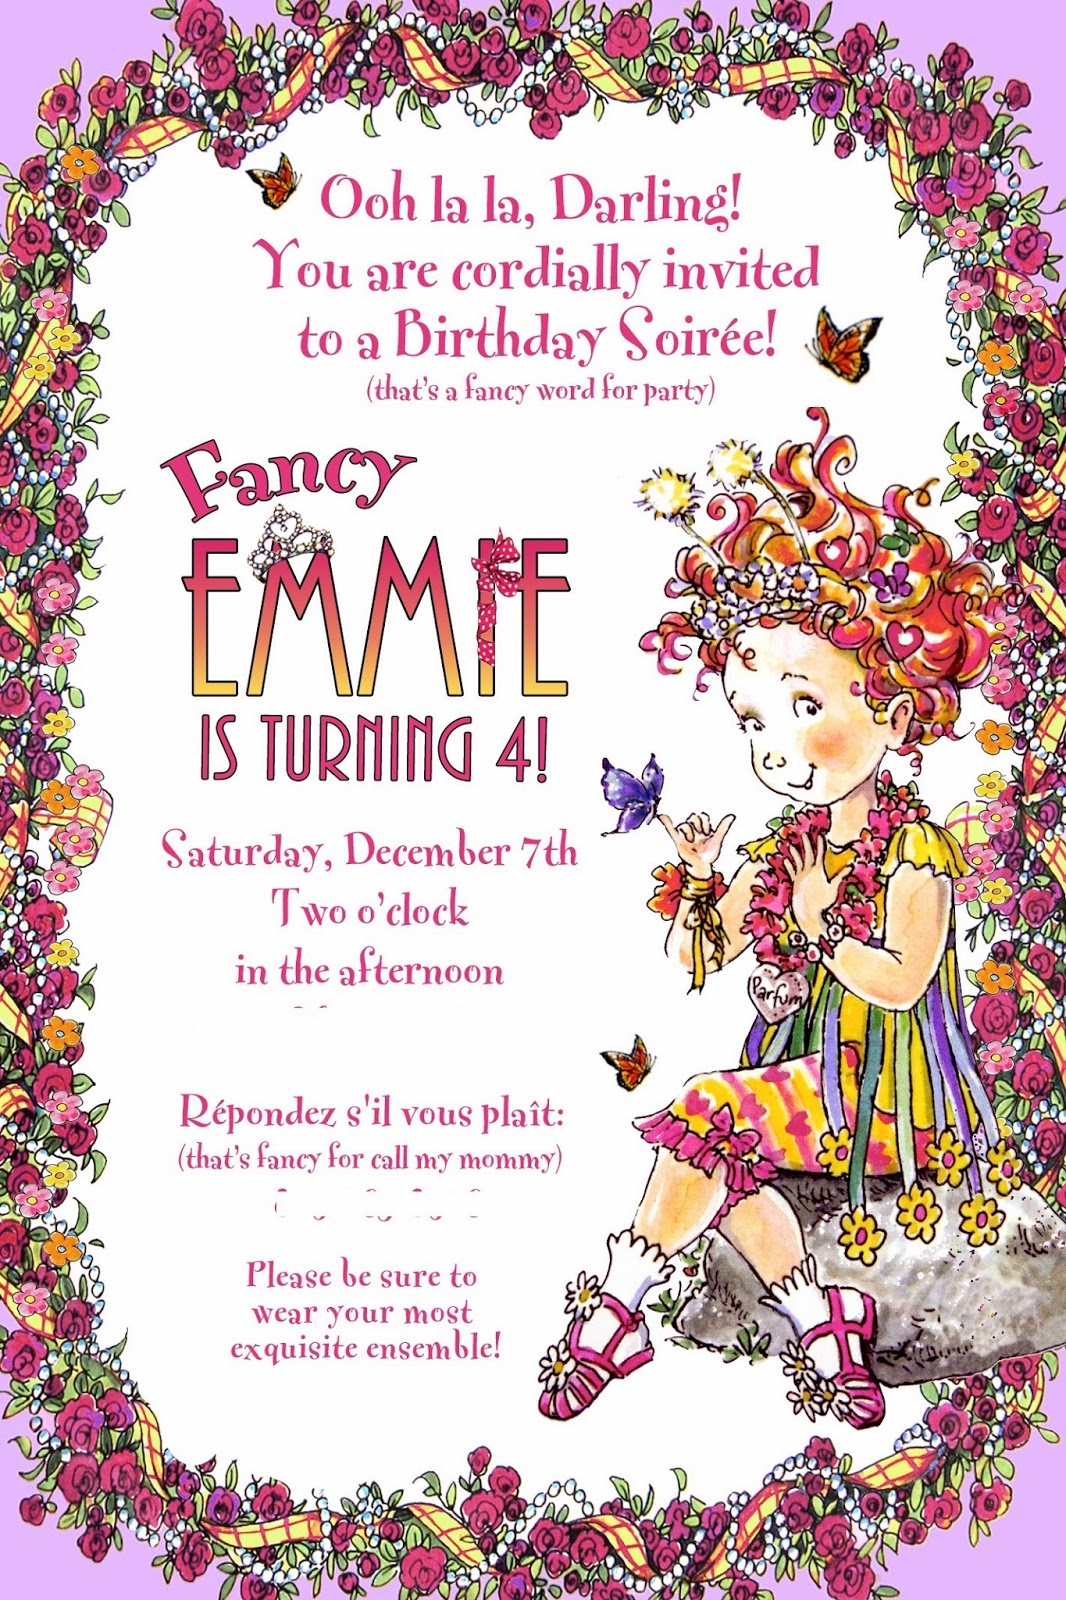 Brand new from the corner of my couch: Emmie's 4th Birthday Party - Fancy Nancy! LY34